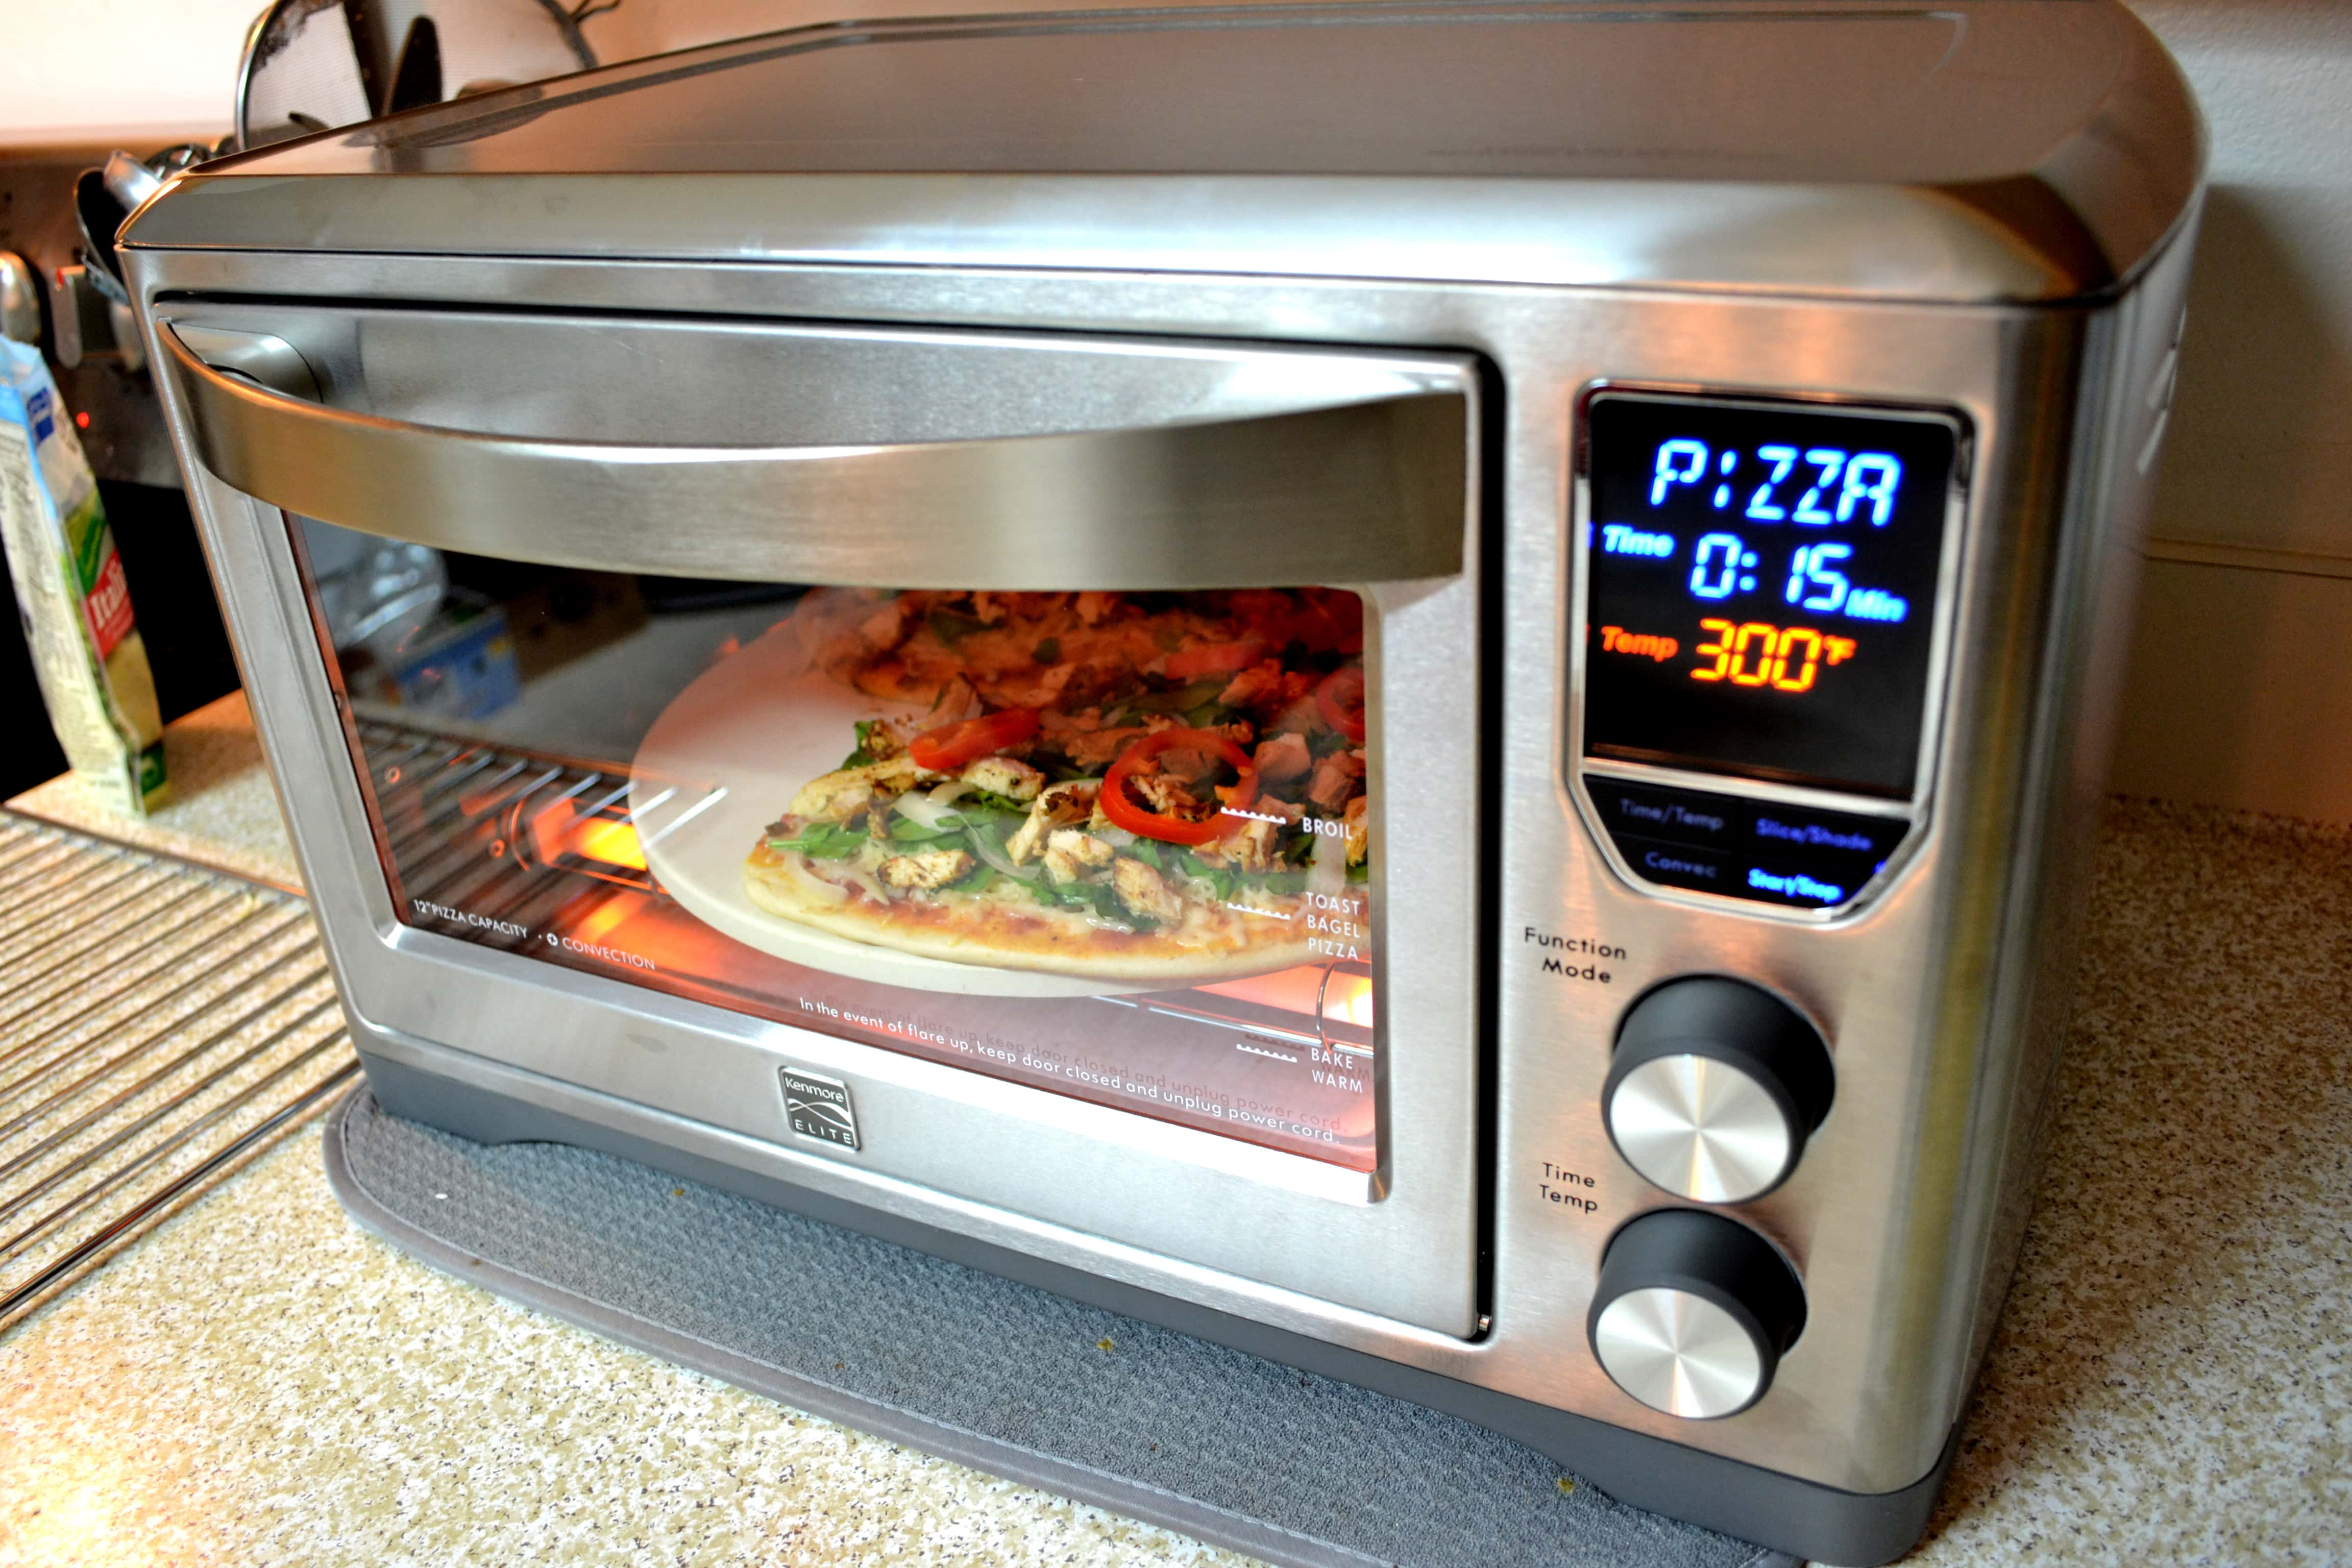 kenmore convection oven. convenience with the kenmore elite digital countertop convection oven - mommy snippets b